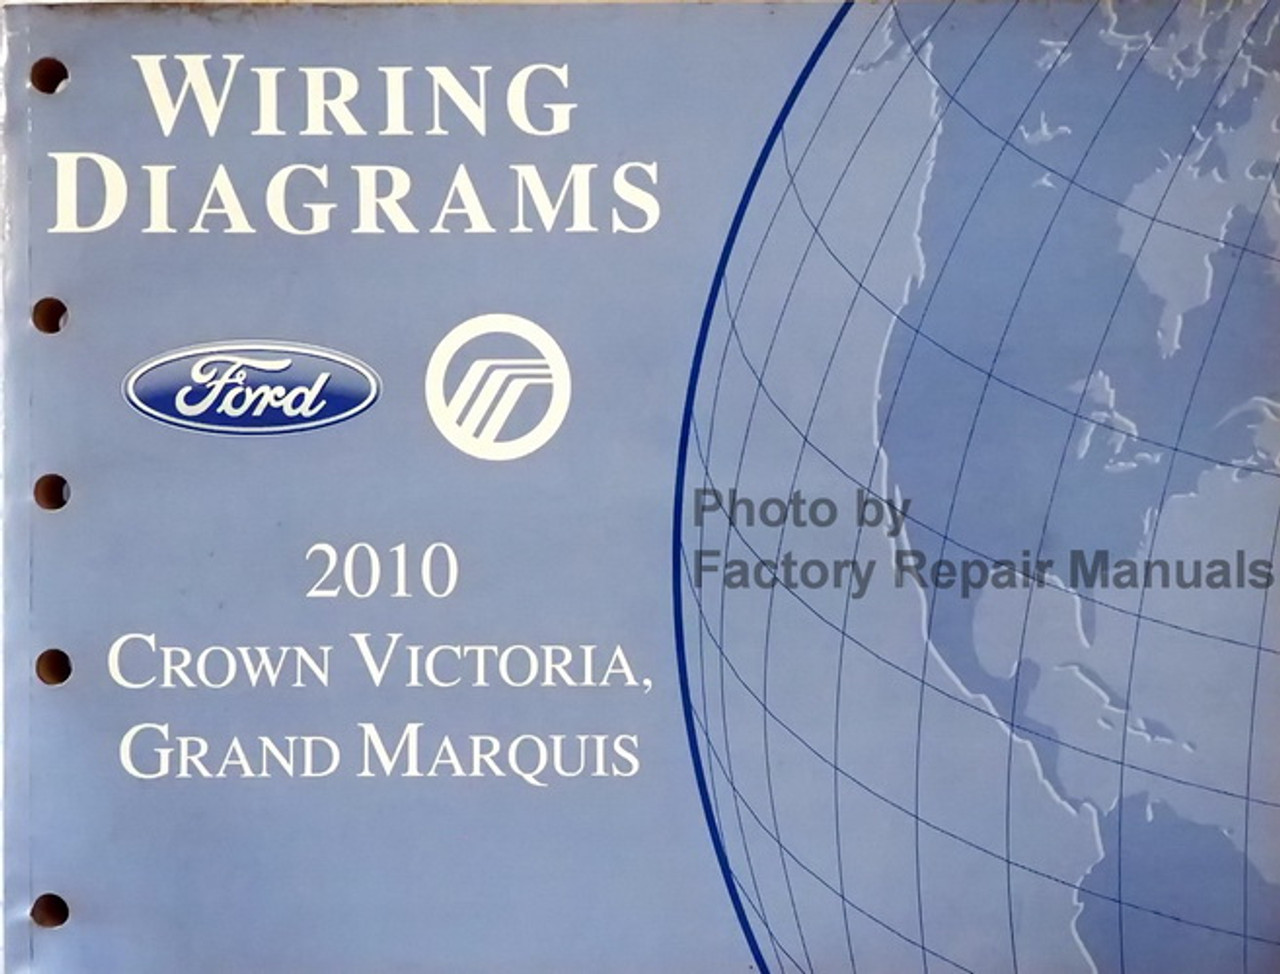 [SCHEMATICS_48IS]  2010 Ford Crown Victoria Mercury Grand Marquis Electrical Wiring Diagrams -  Factory Repair Manuals | 2010 Crown Victoria Wiring Diagram |  | Factory Repair Manuals